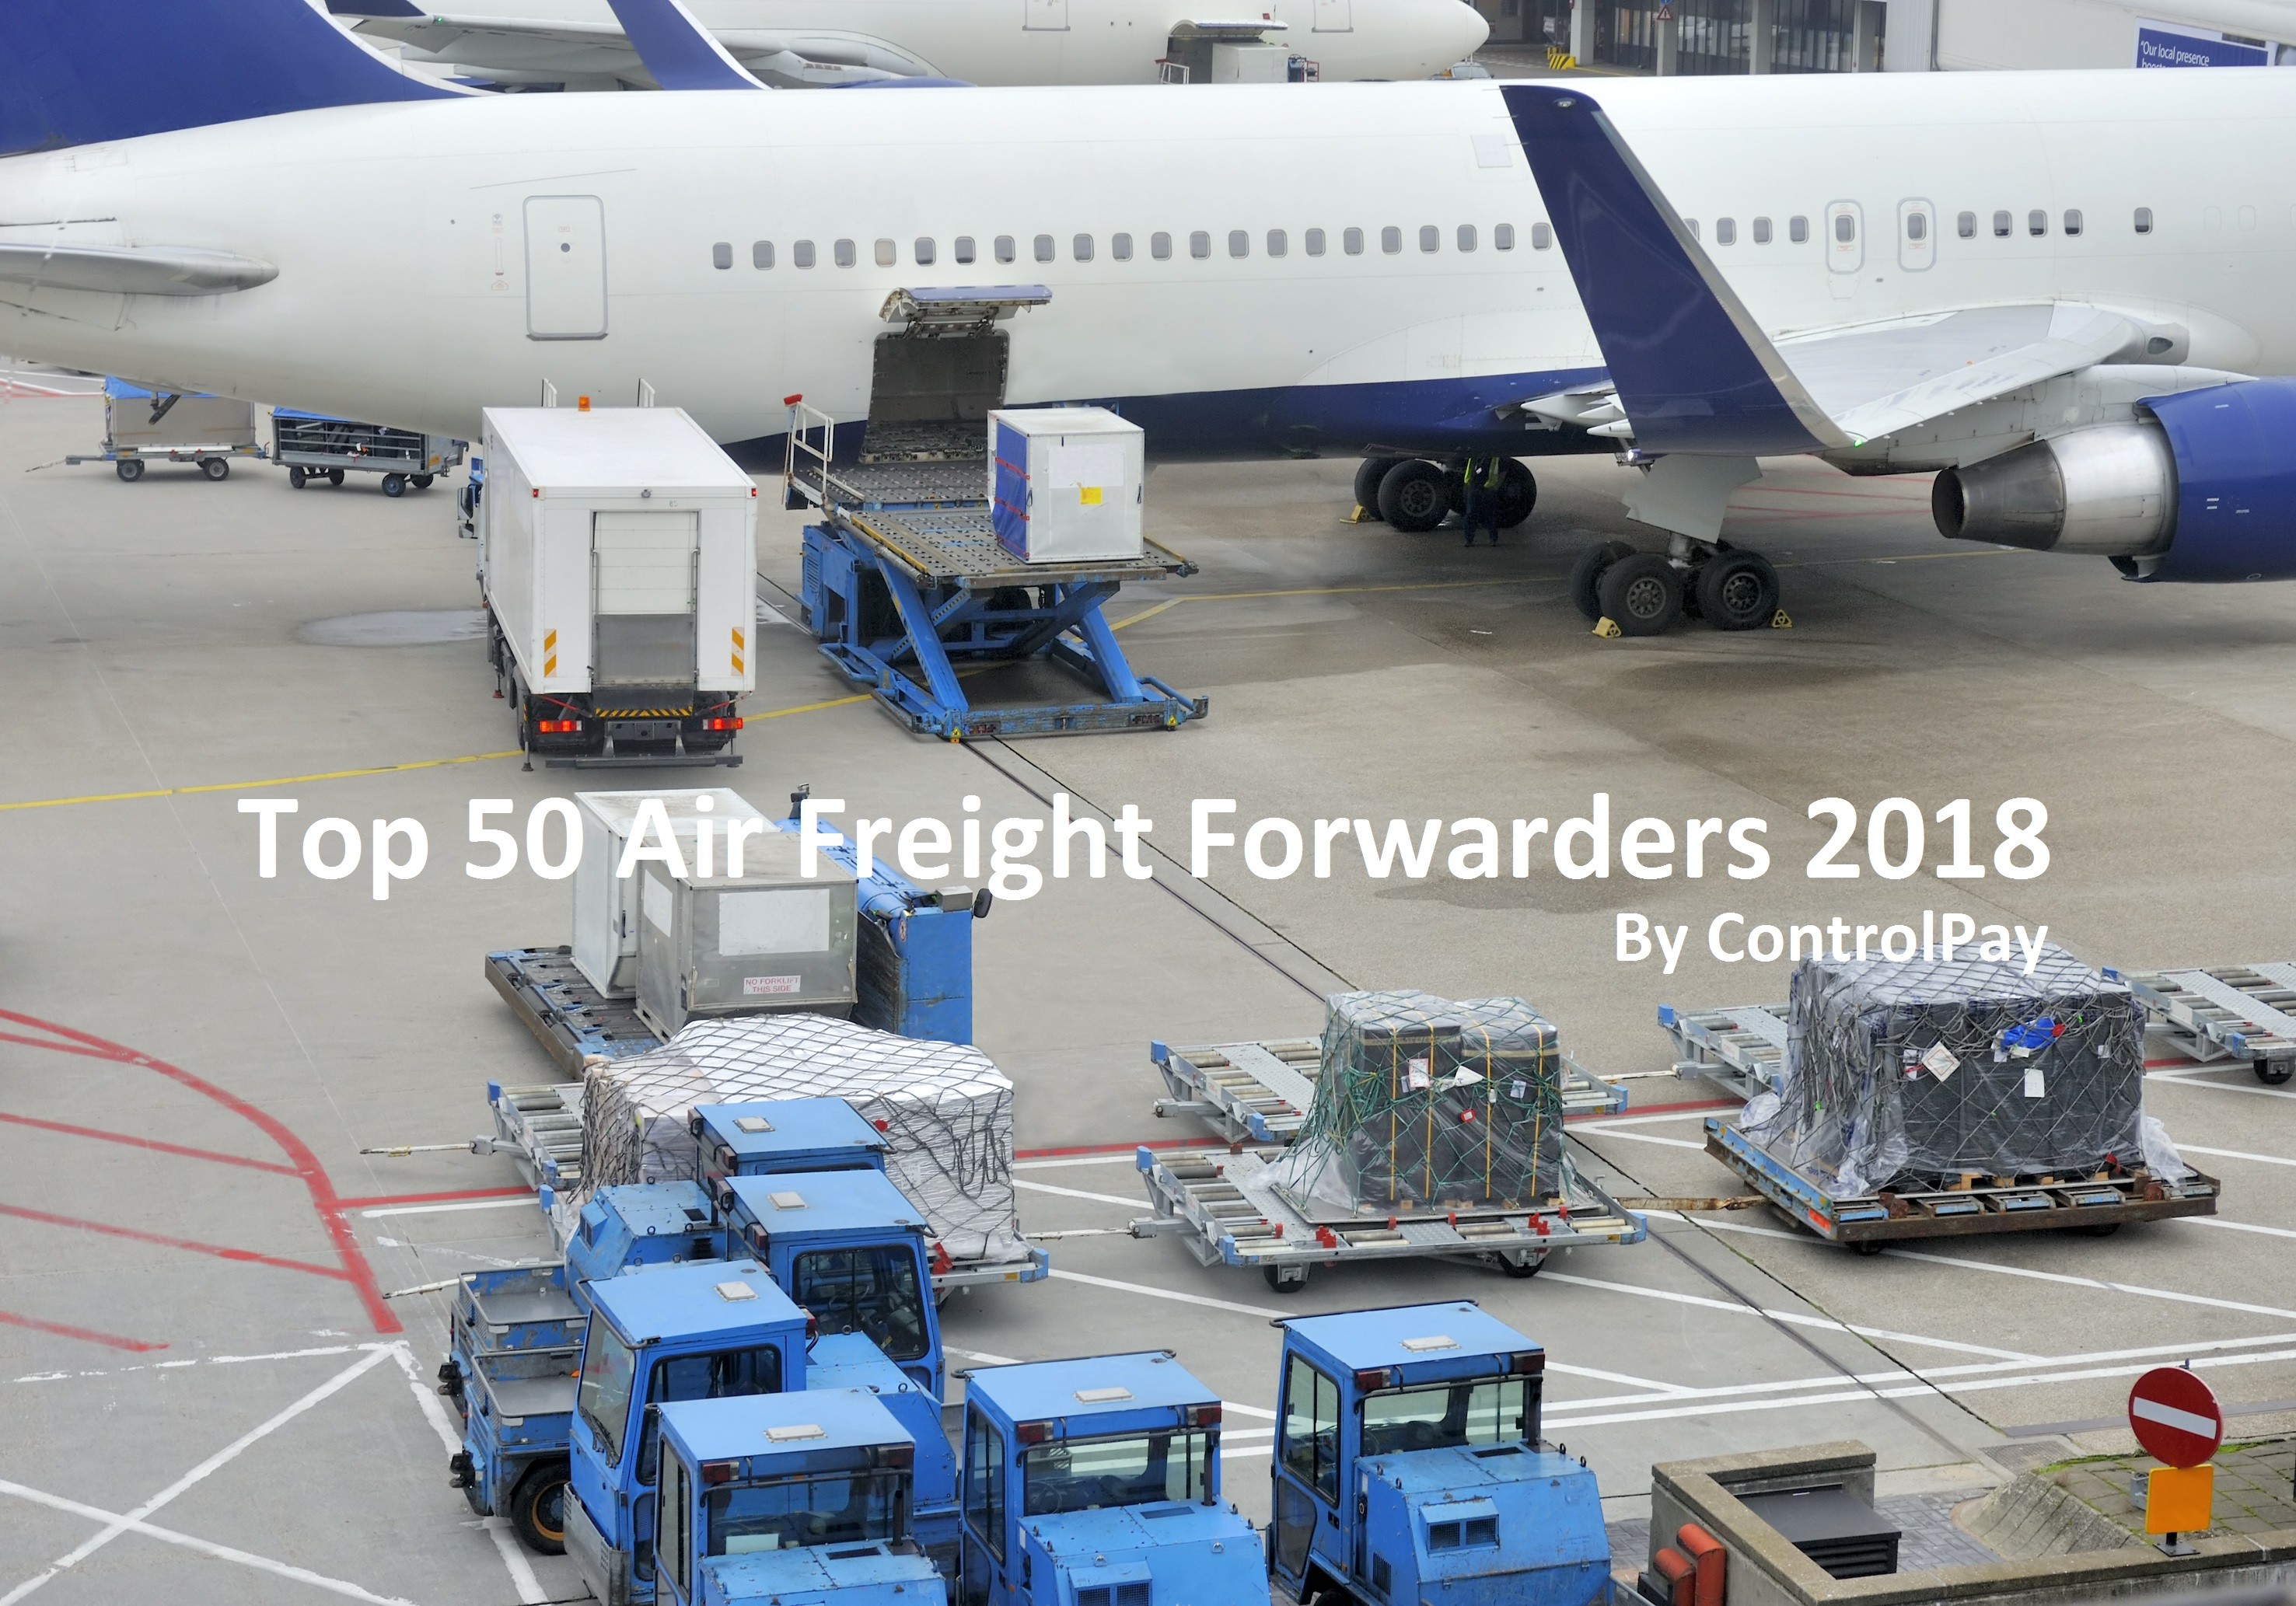 Top 50 Airfreight Forwarders 2018